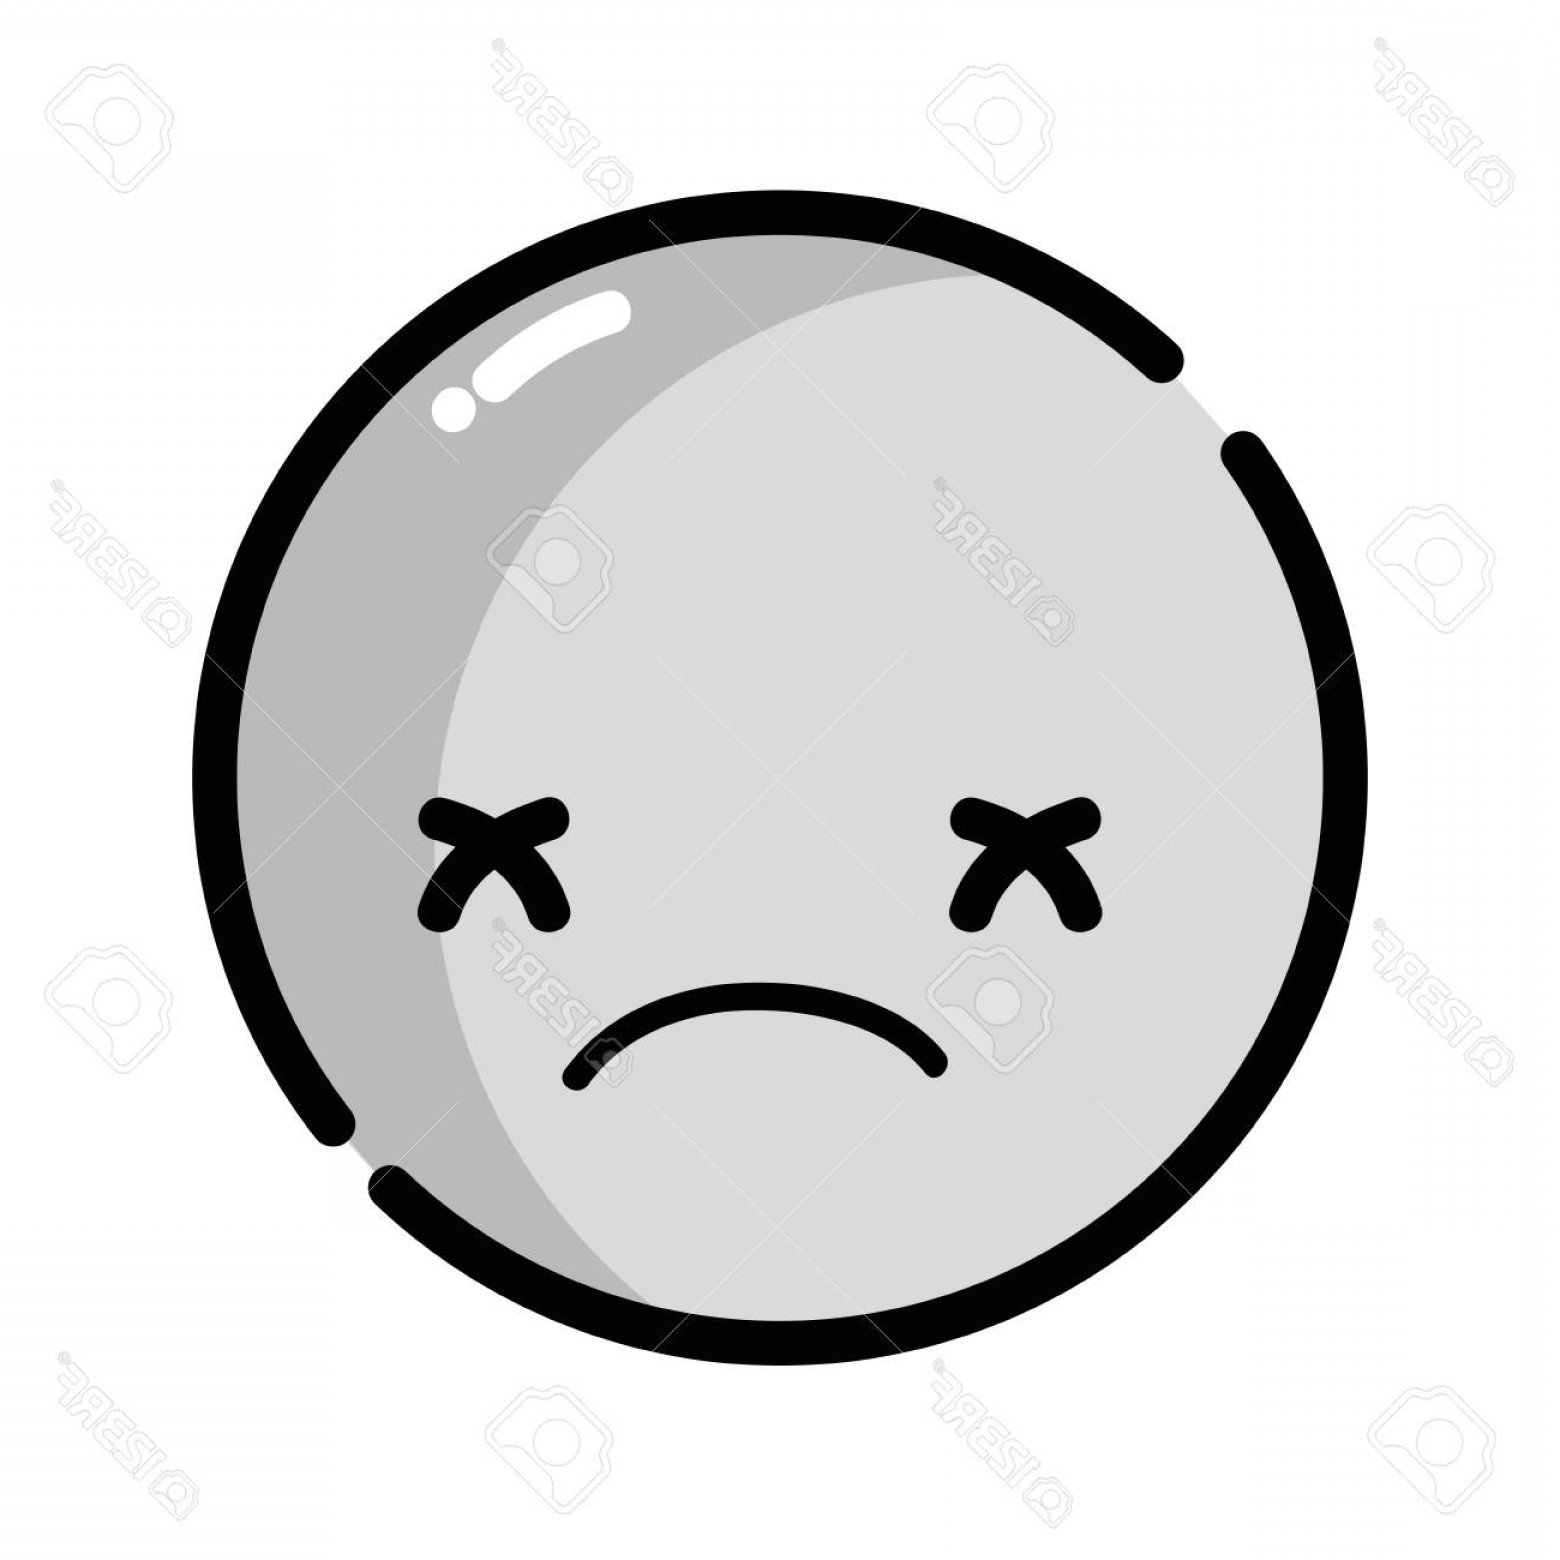 Photostock Vector Kawaii Head With Cute Sad Face Vector Illustration ... png free download